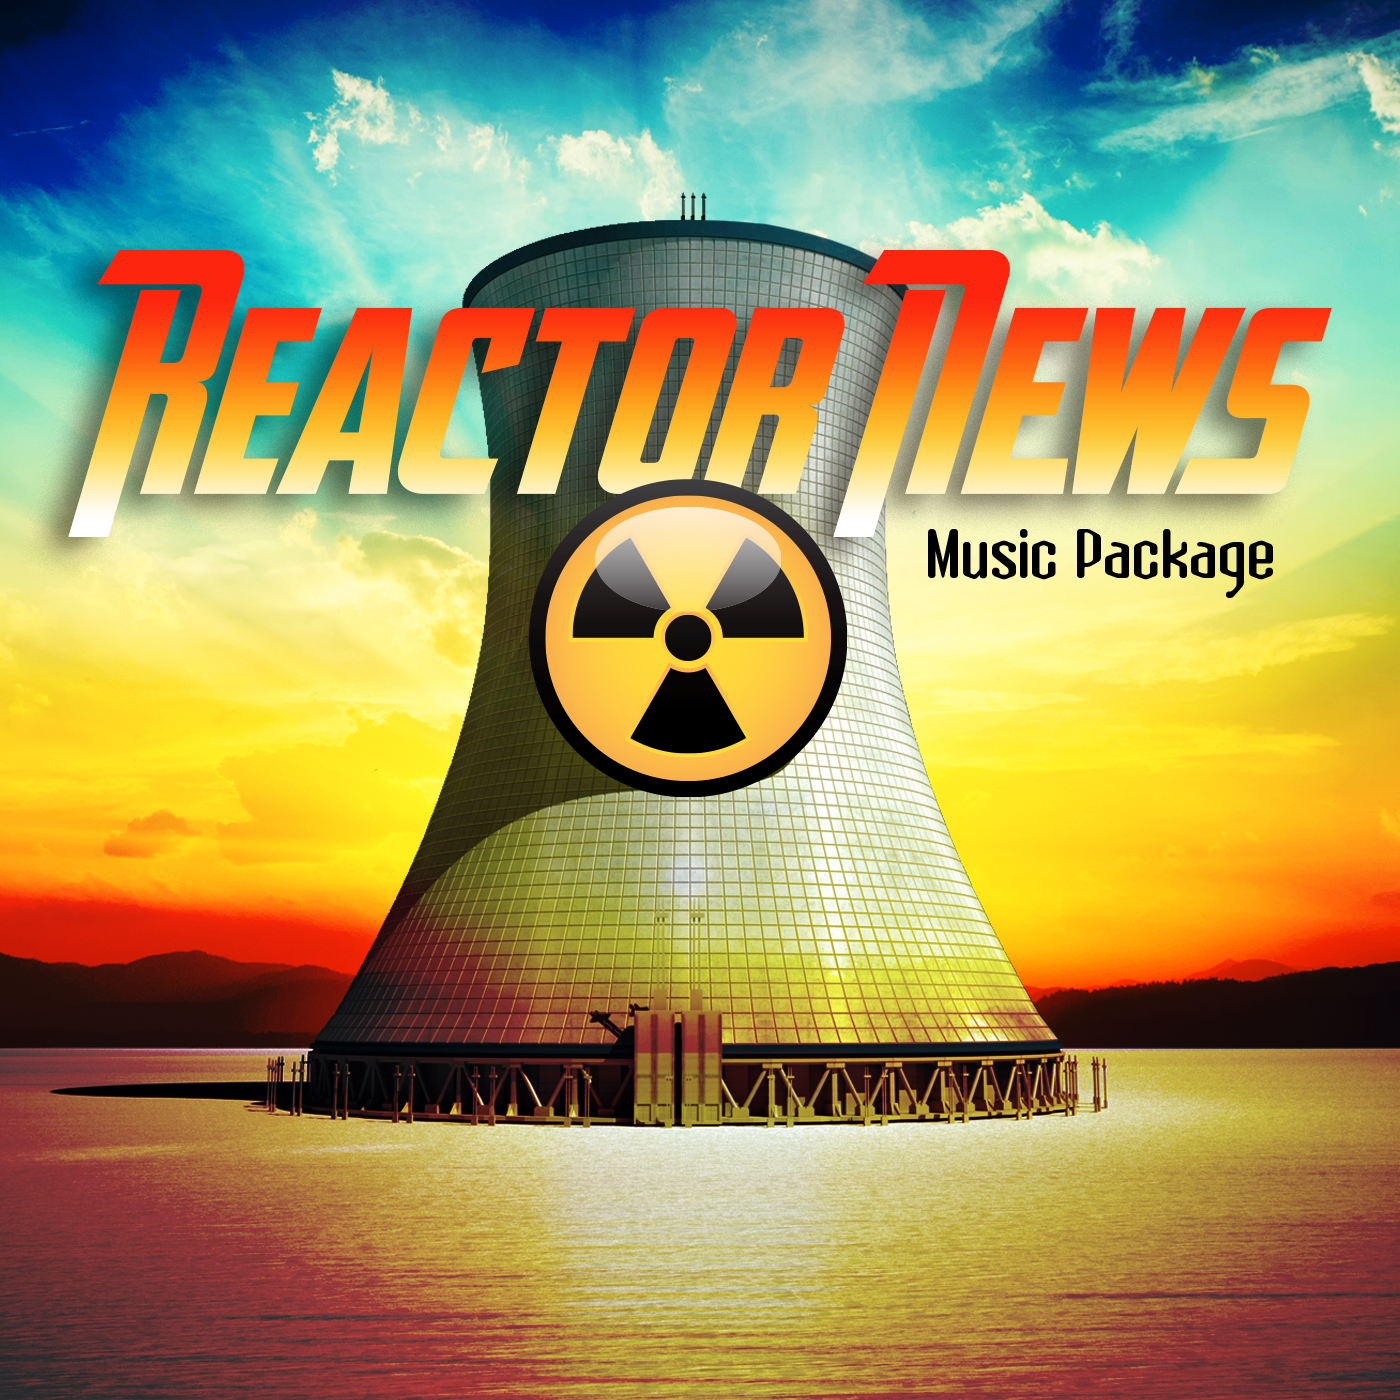 Reactor News Music Package